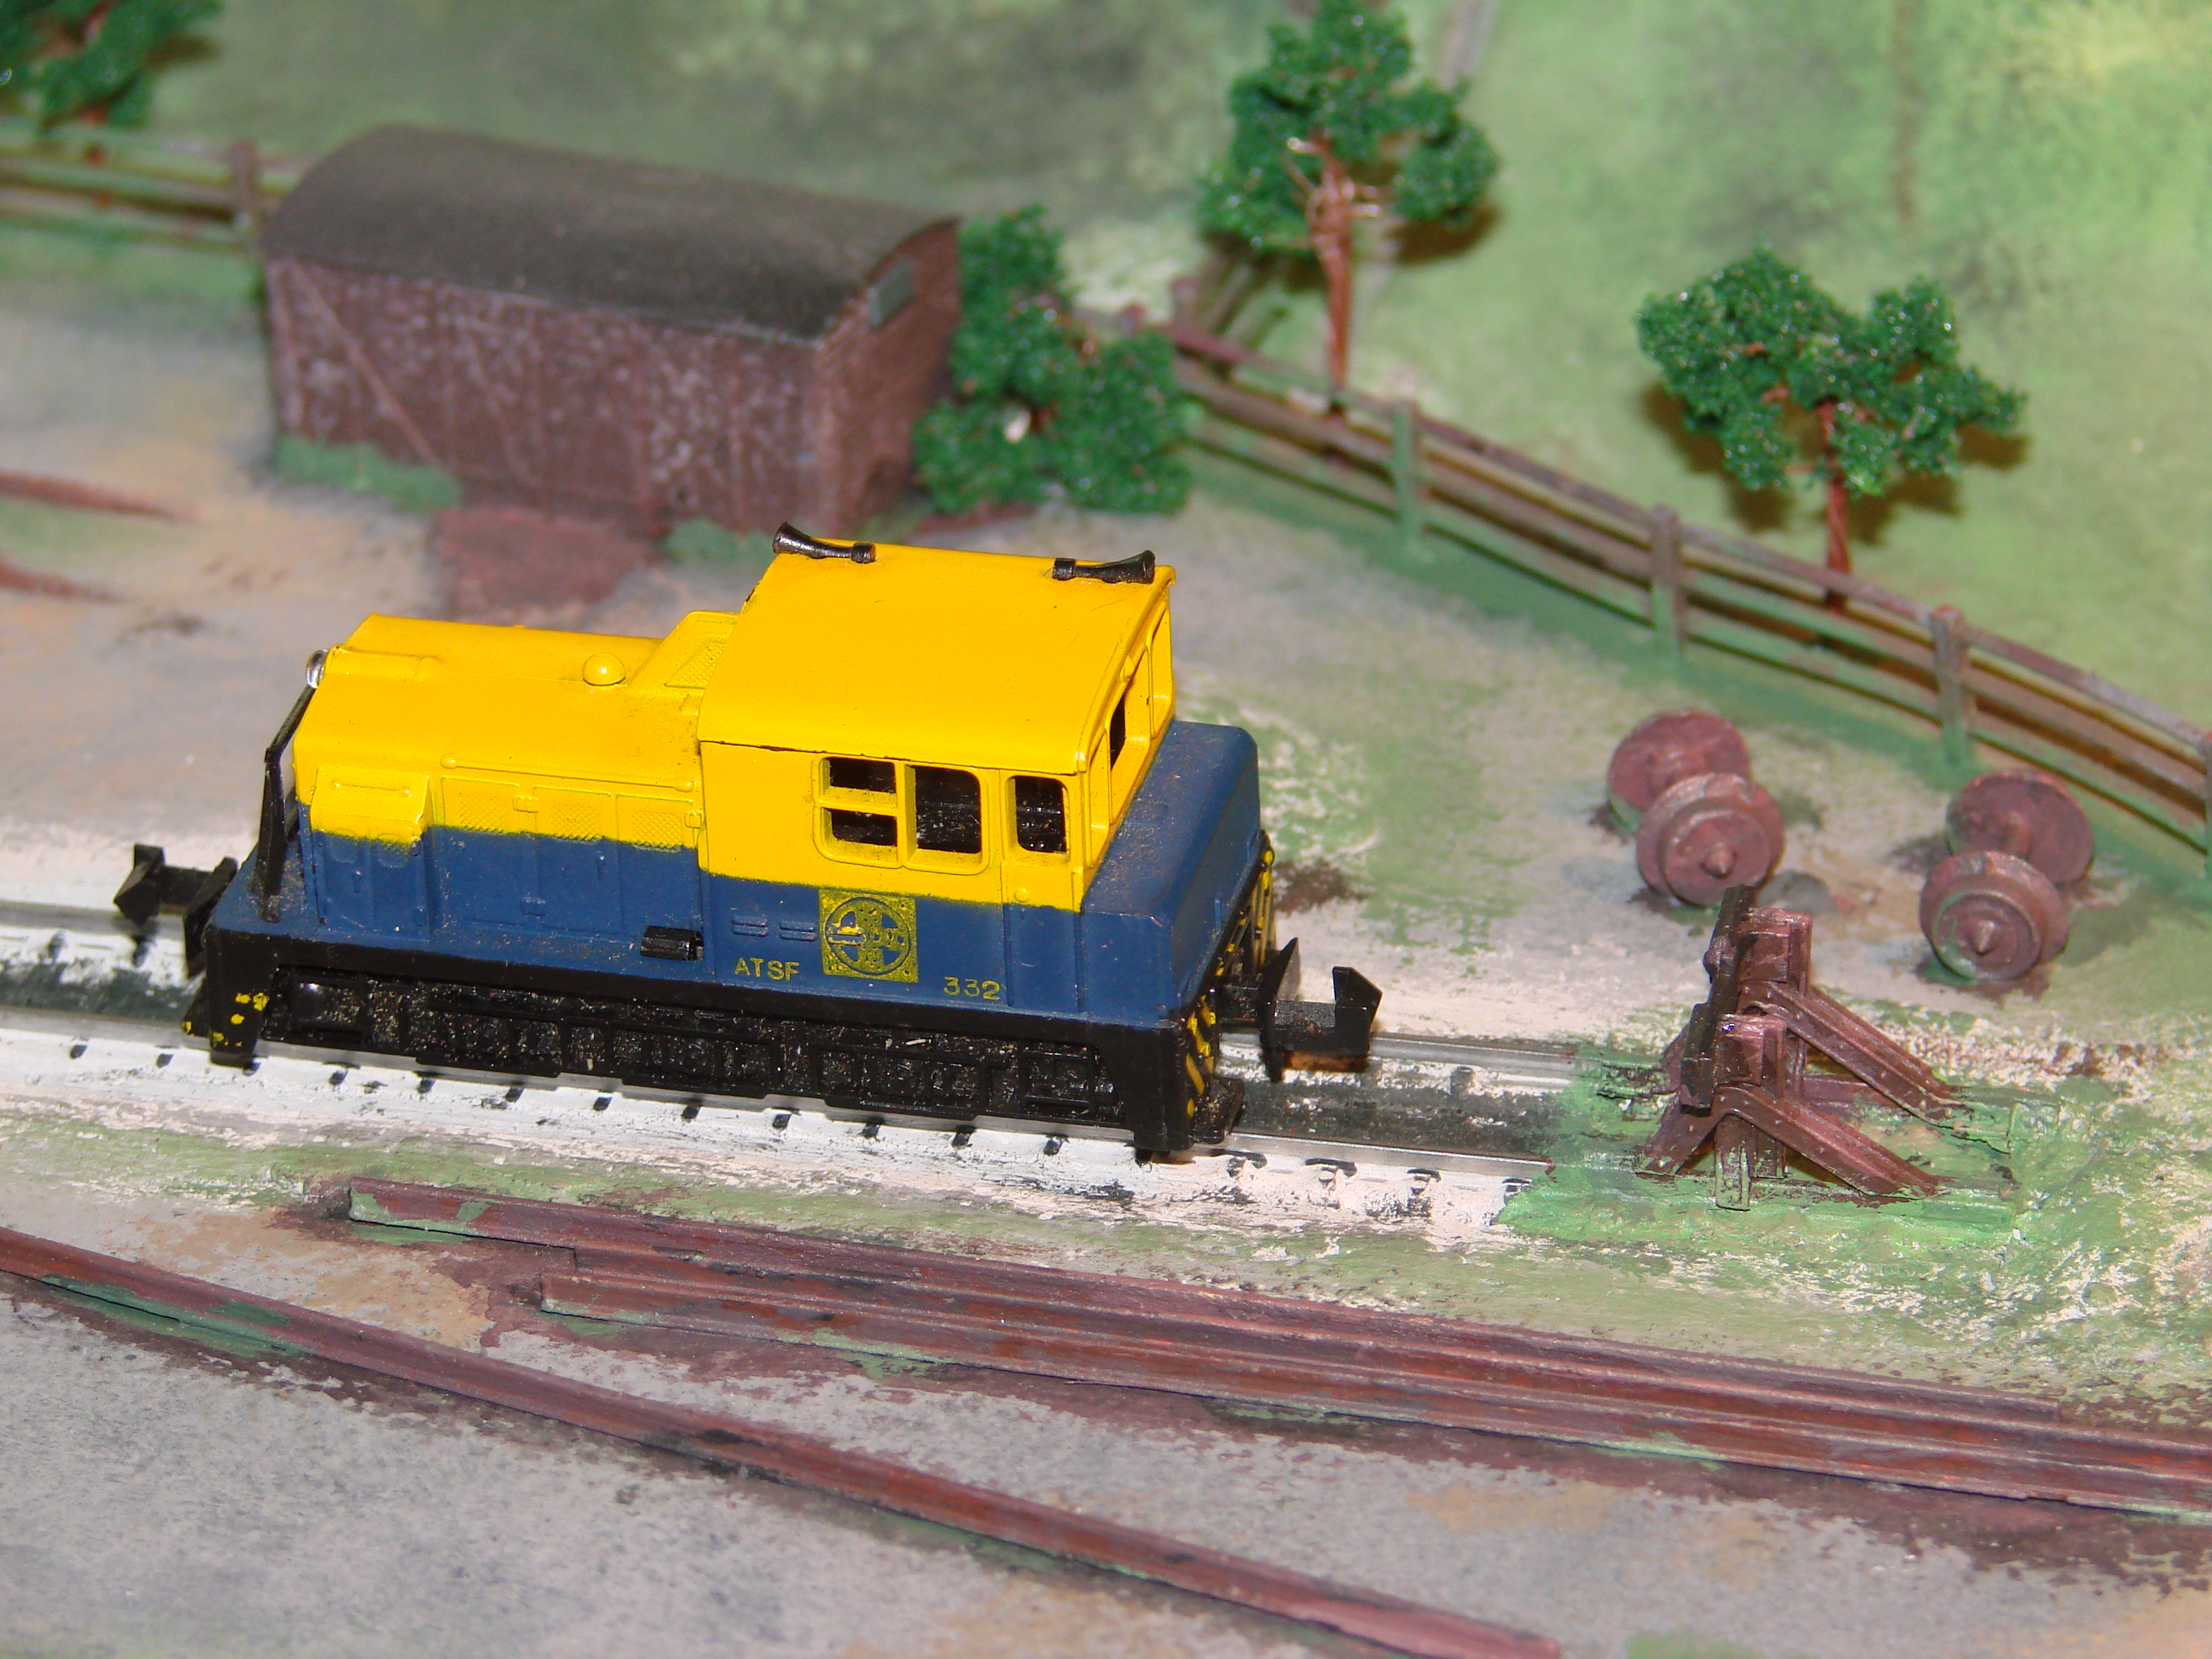 Hornby Train Restorations - Articles written by Hornby Train